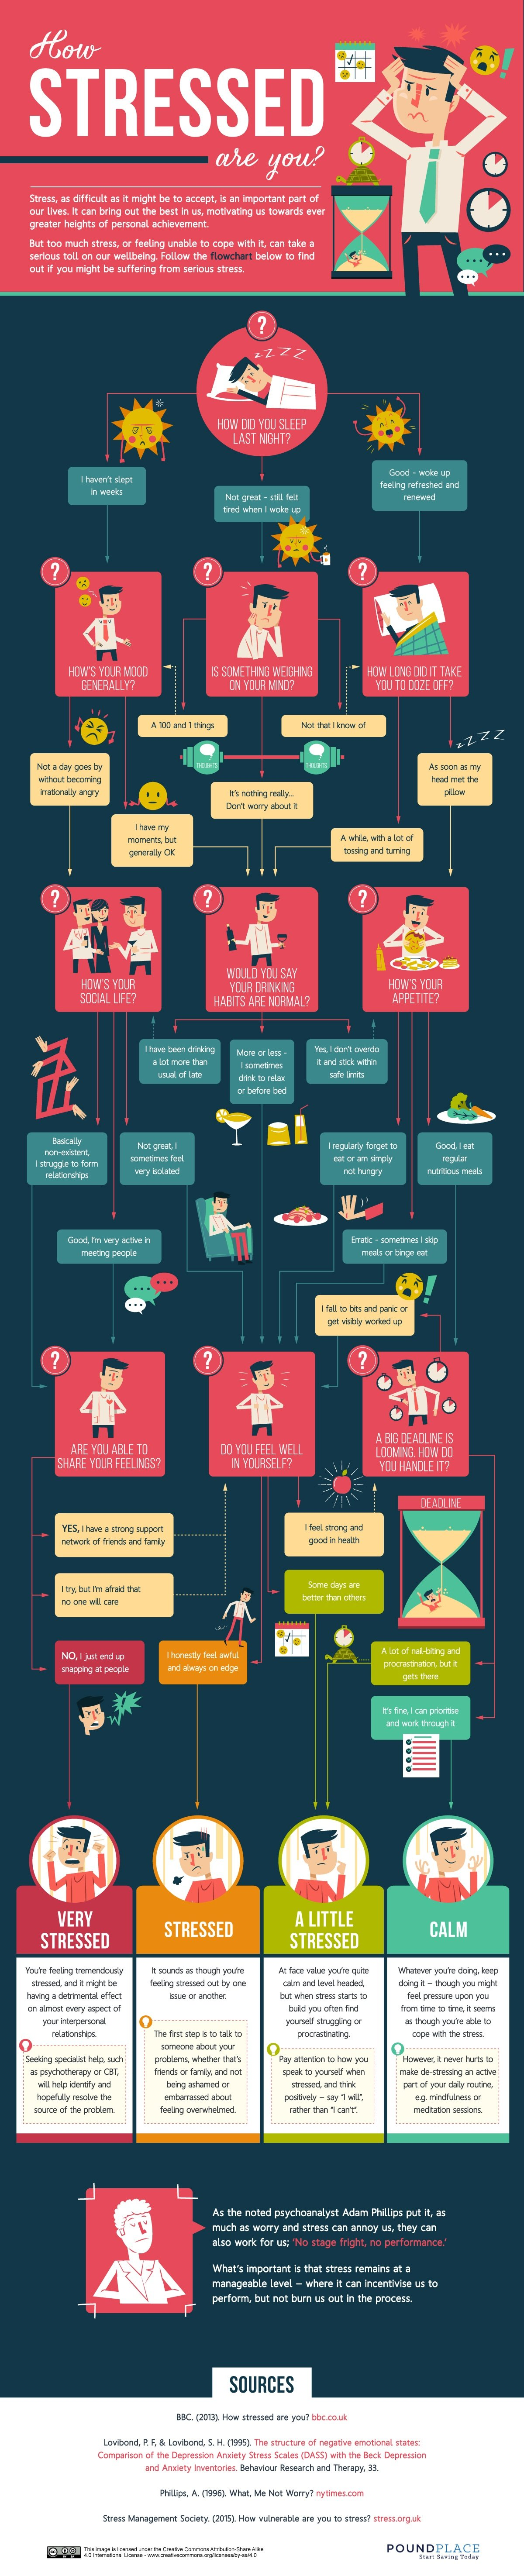 How Stressed Are You Right Now Flowchart